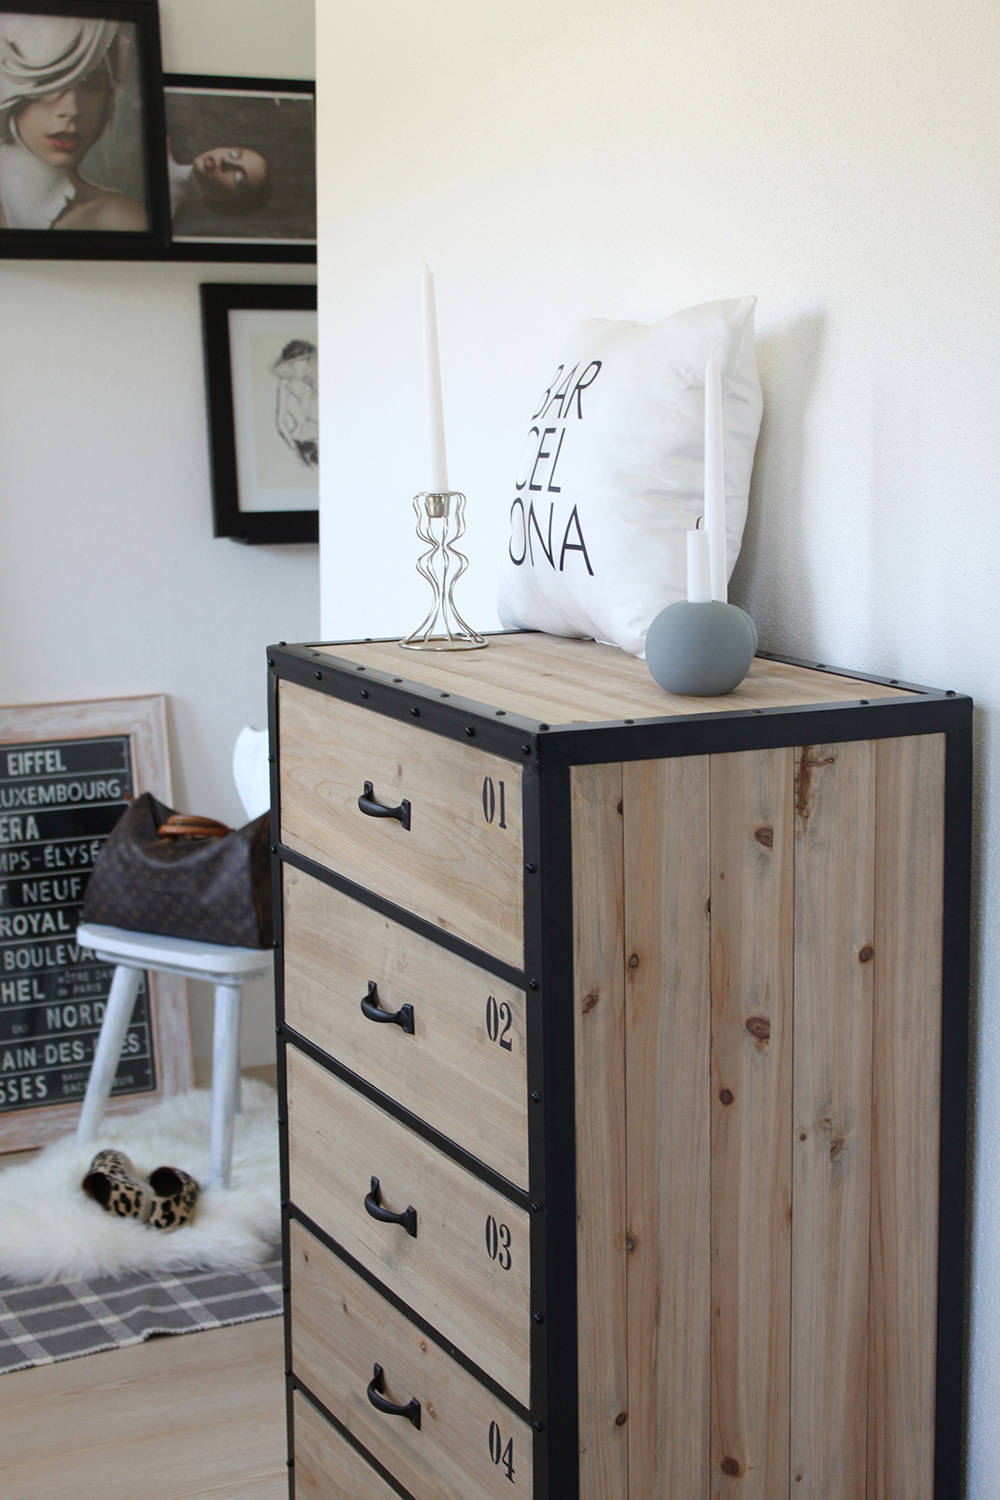 homestory der eingangsbereich. Black Bedroom Furniture Sets. Home Design Ideas